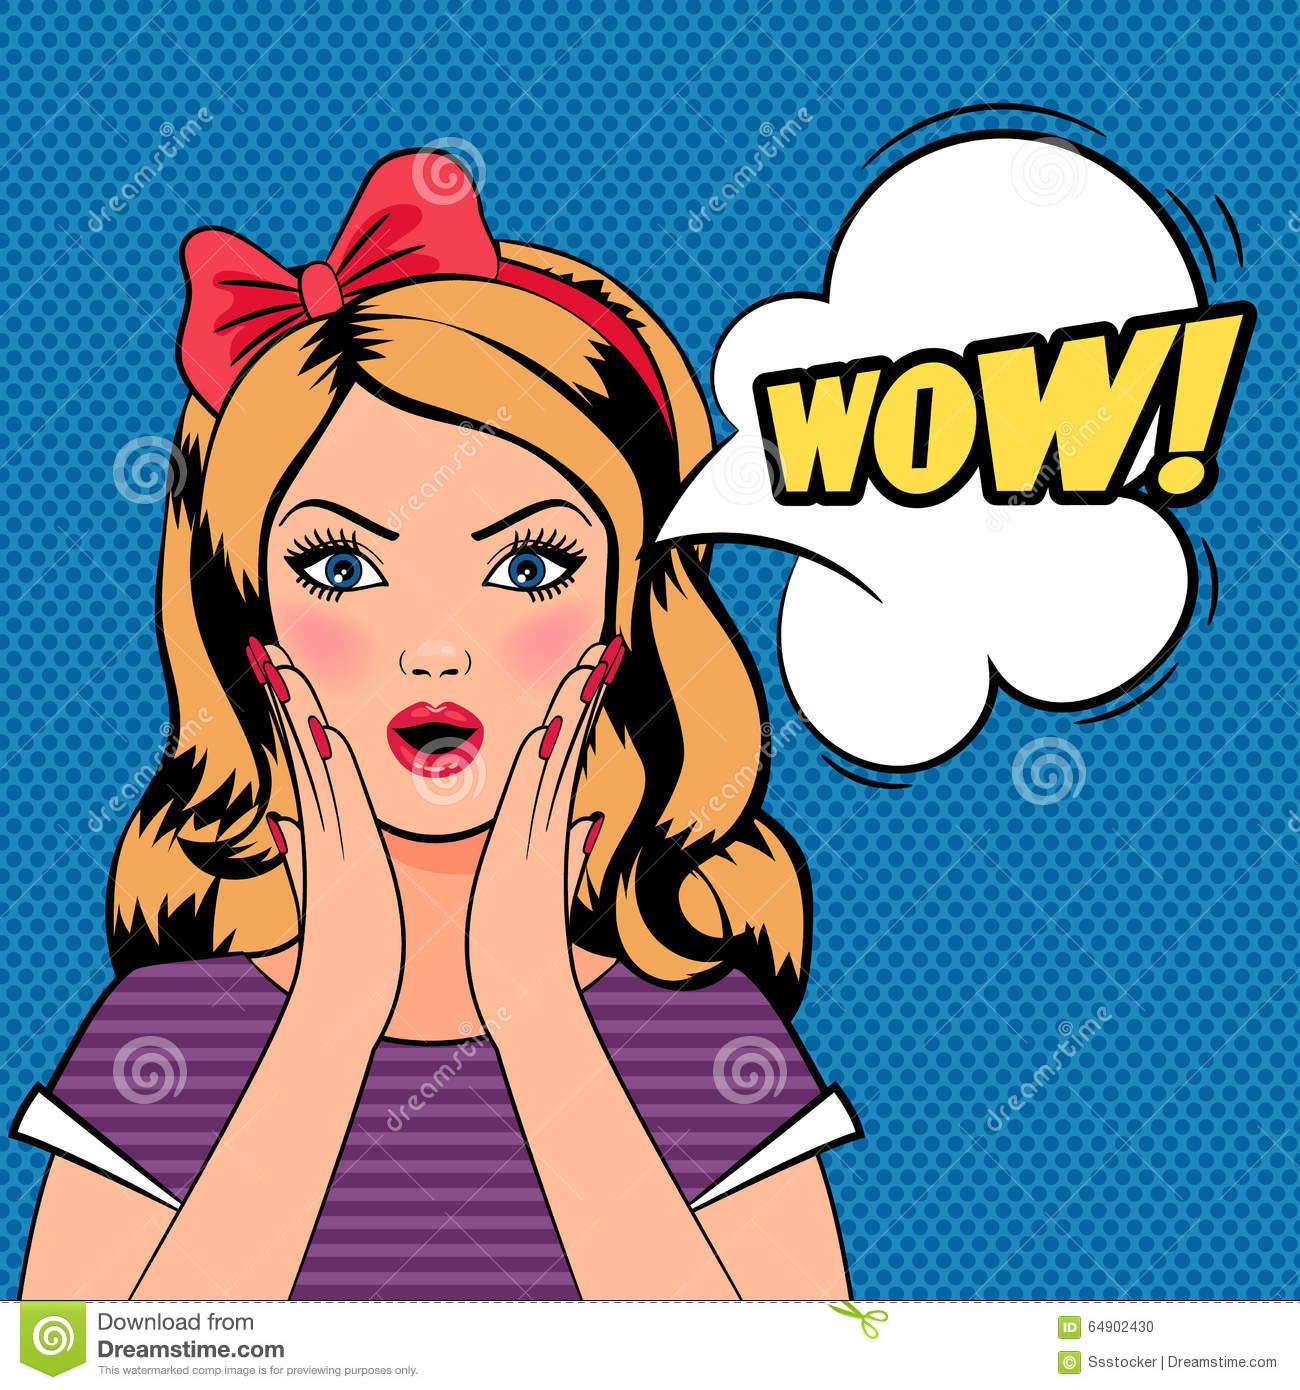 Wow Woman, Pop Art Woman With WOW Sign Stock Vector - Image: 64902430